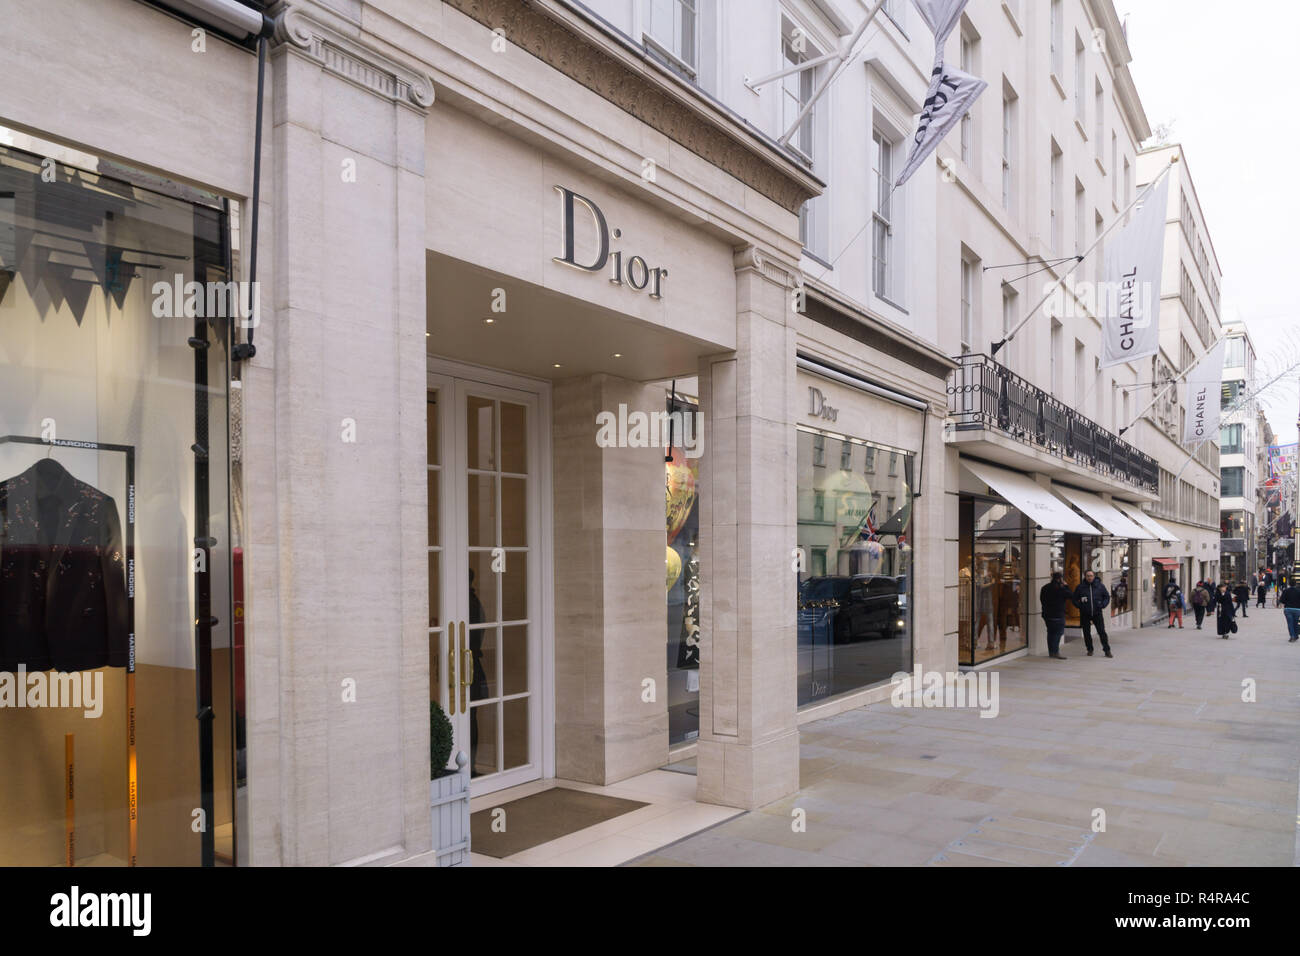 The Dior Shop on New Bond St, Mayfair, London - Stock Image